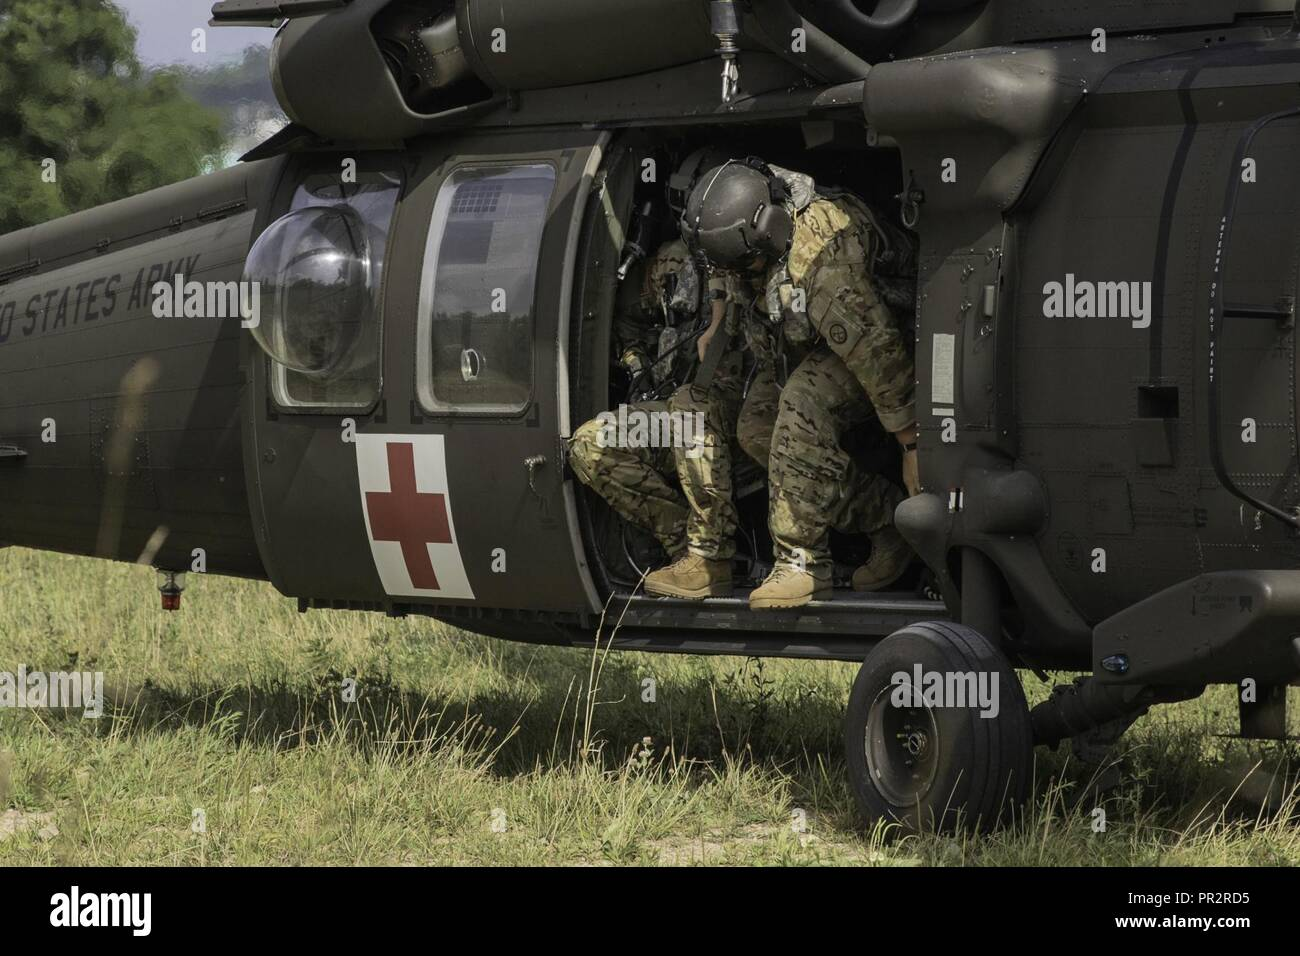 West Virginia Army National Guard Soldiers Assigned To The 772nd Troop Command And Attached Joint Task Force Aviation Respond A Medical Emergency On